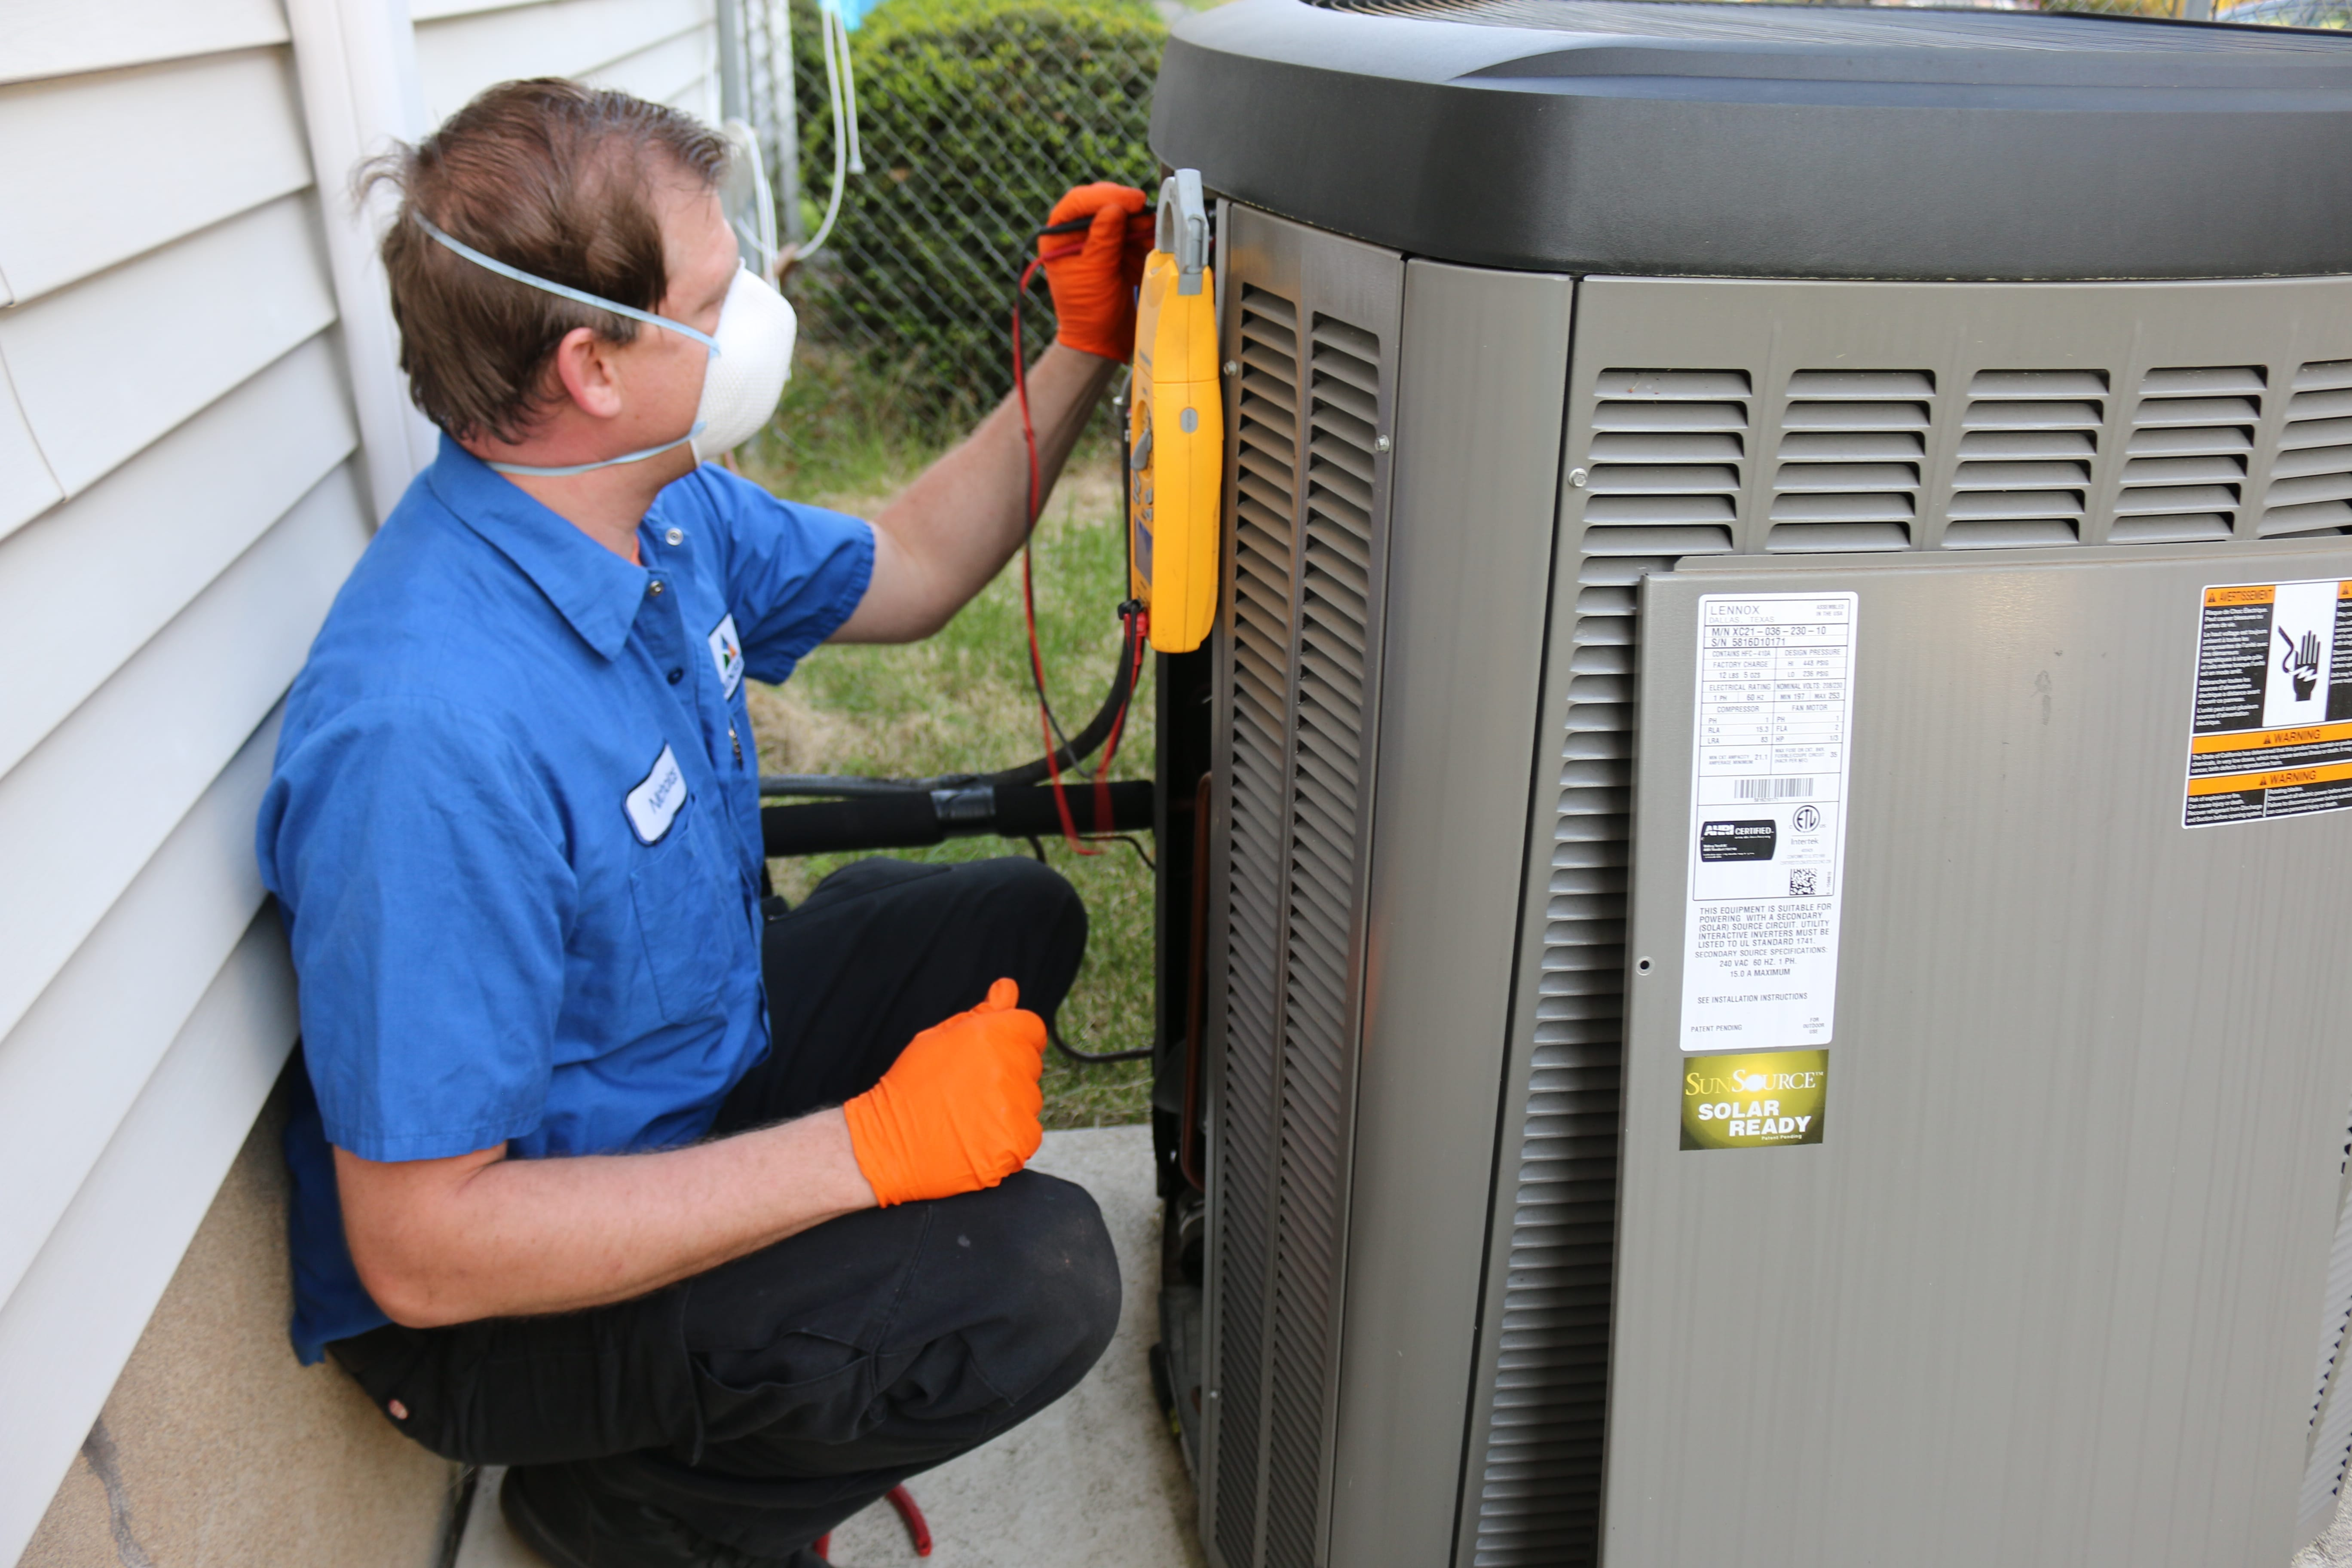 Man fixing air conditioning unit